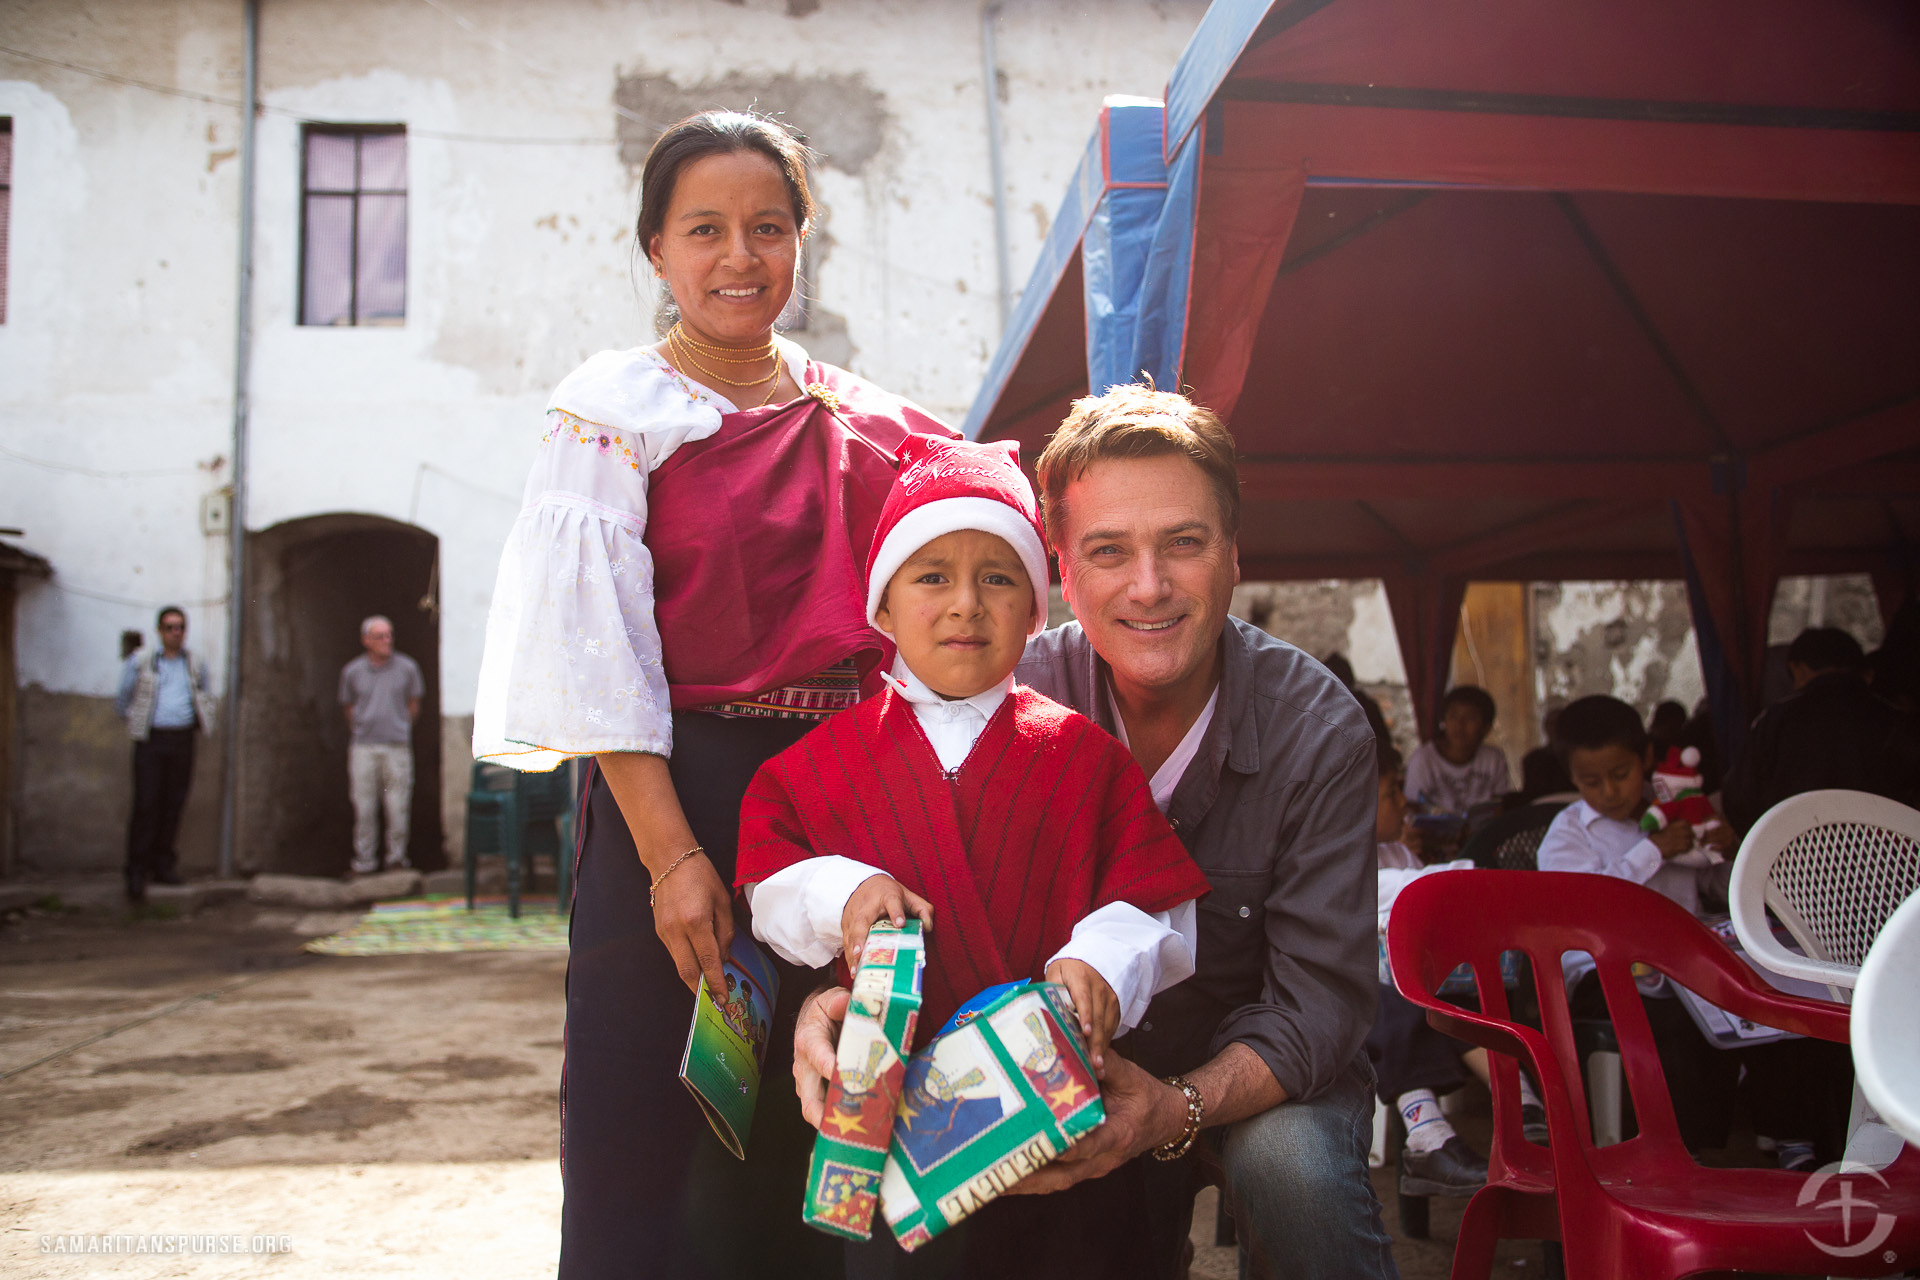 Michael W. Smith, one of the most popular singers in contemporary Christian music, has made several trips with Samaritan's Purse to deliver shoe box gifts.